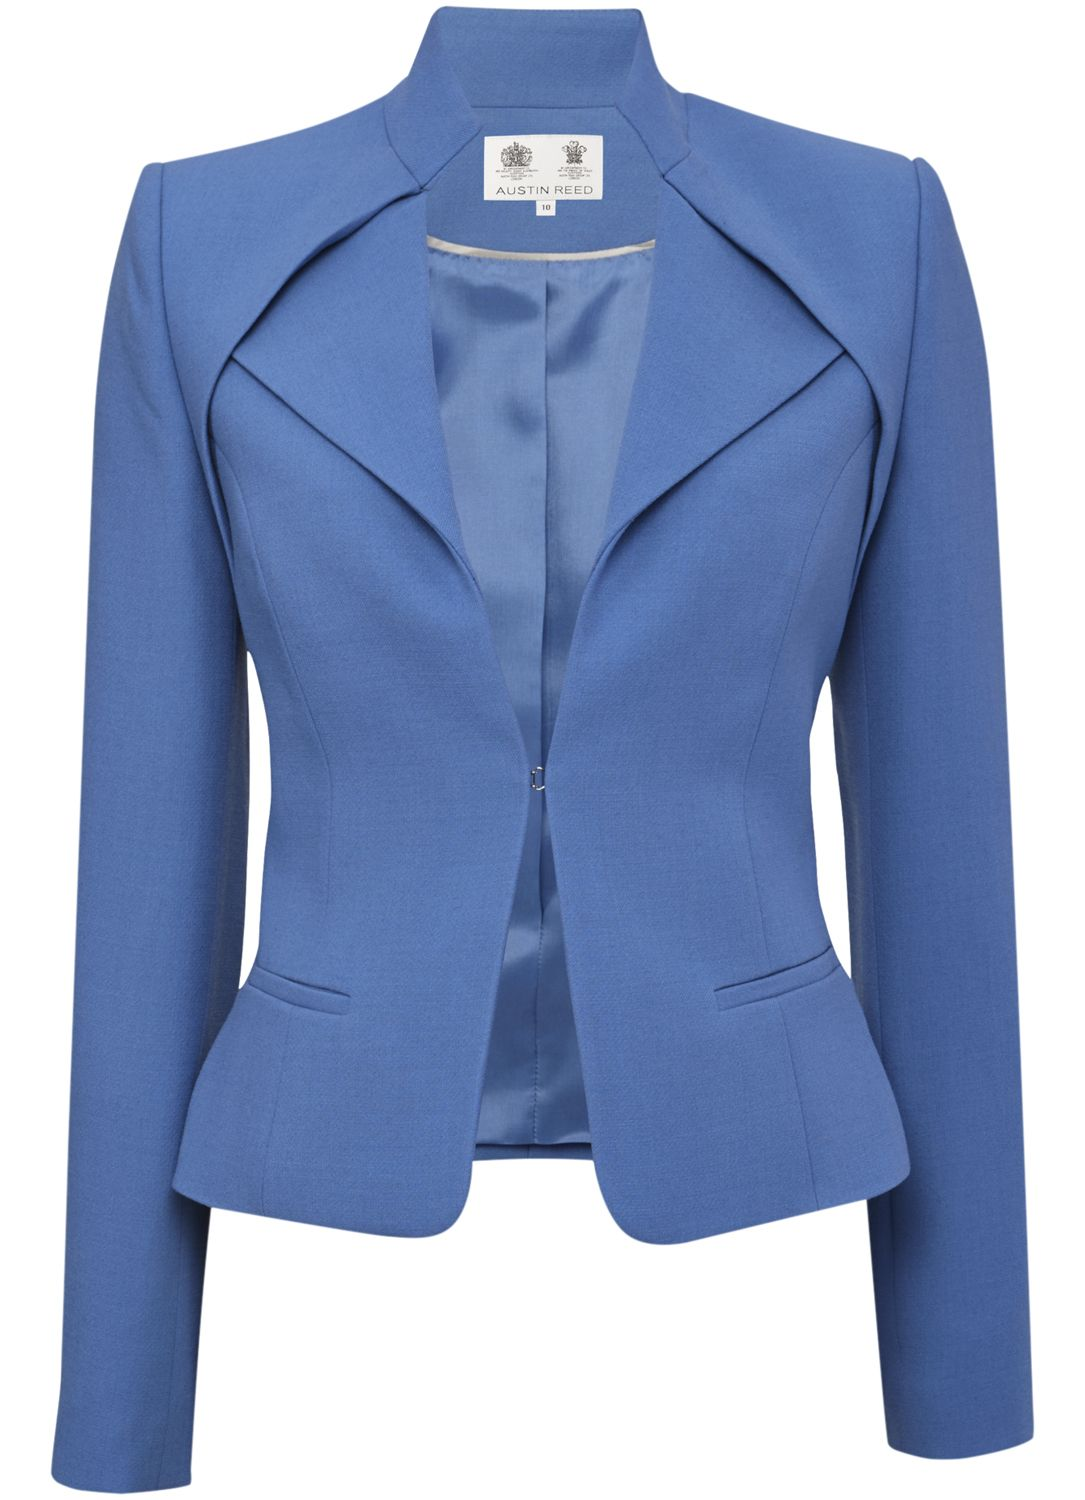 Cornflower Blue Jacket Jackets Austin Reed Clothes Blazer Fashion Office Outfits